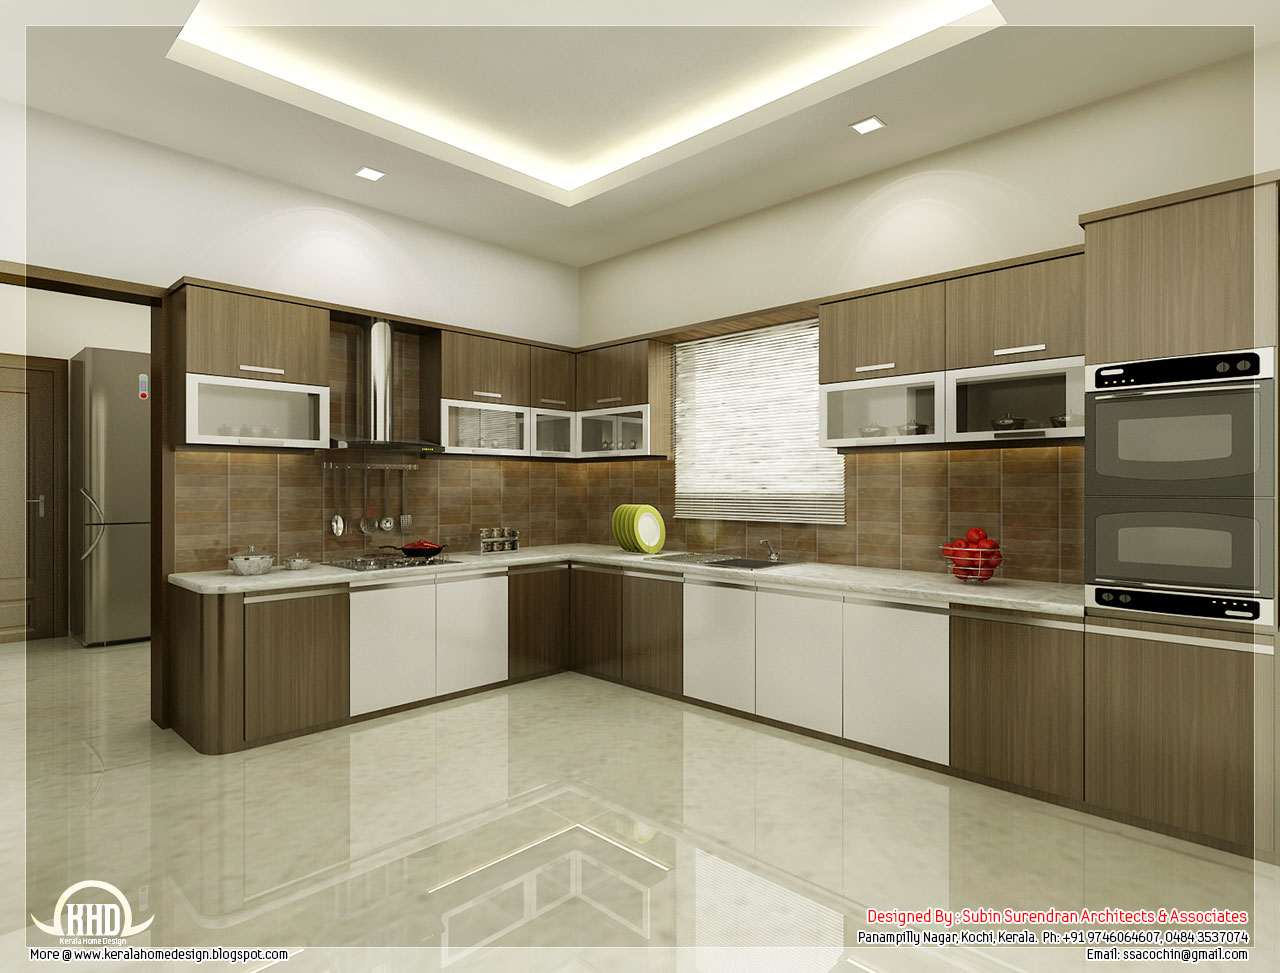 Kitchen Interior Idea photo - 6